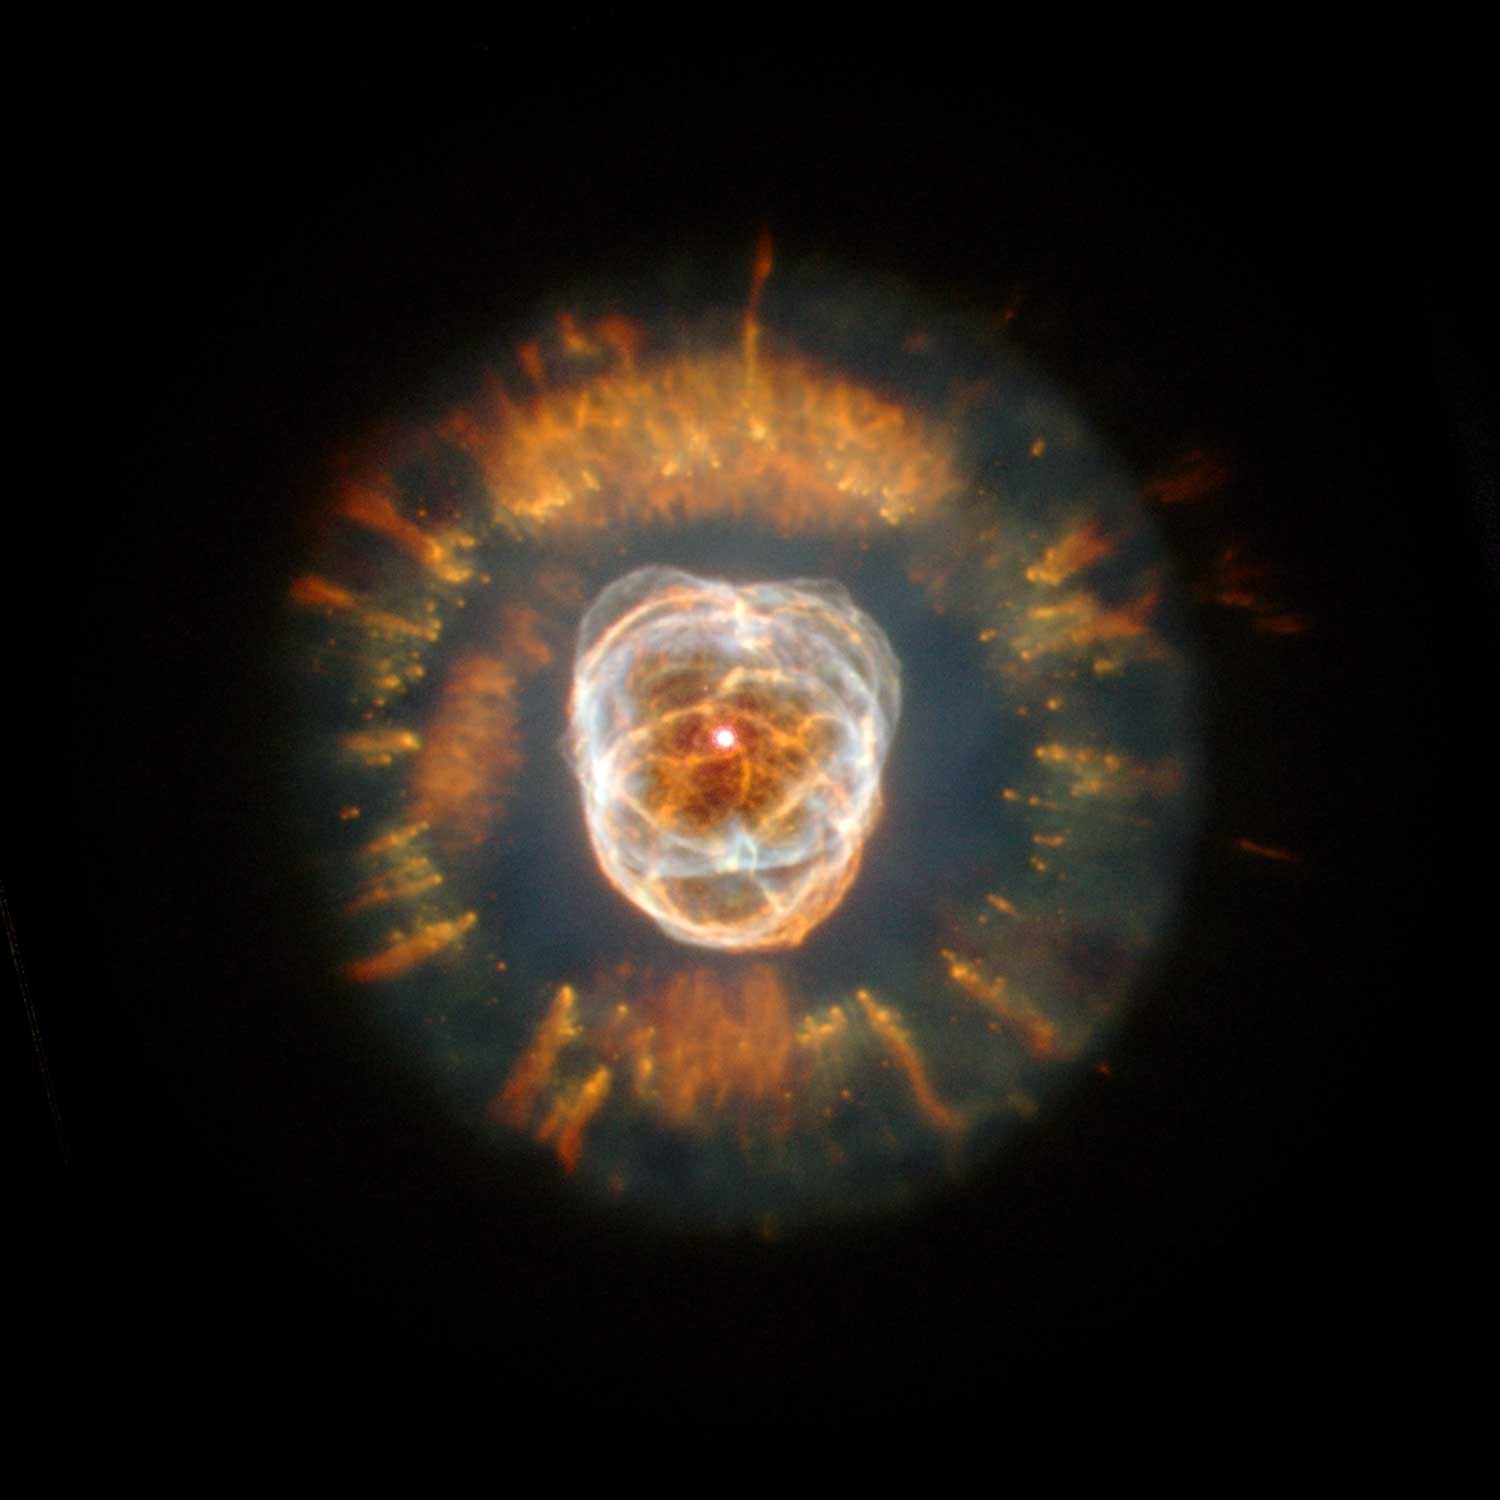 <strong>The Eskimo Nebula</strong>:                                   This planetary nebula, also known as NGC 2392, began forming about 10,000 years ago, when the dying star began flinging material into space. The Eskimo Nebula is about 5,000 light-years from Earth in the constellation Gemini.                                   <i>Image released on Jan. 11, 2000</i>